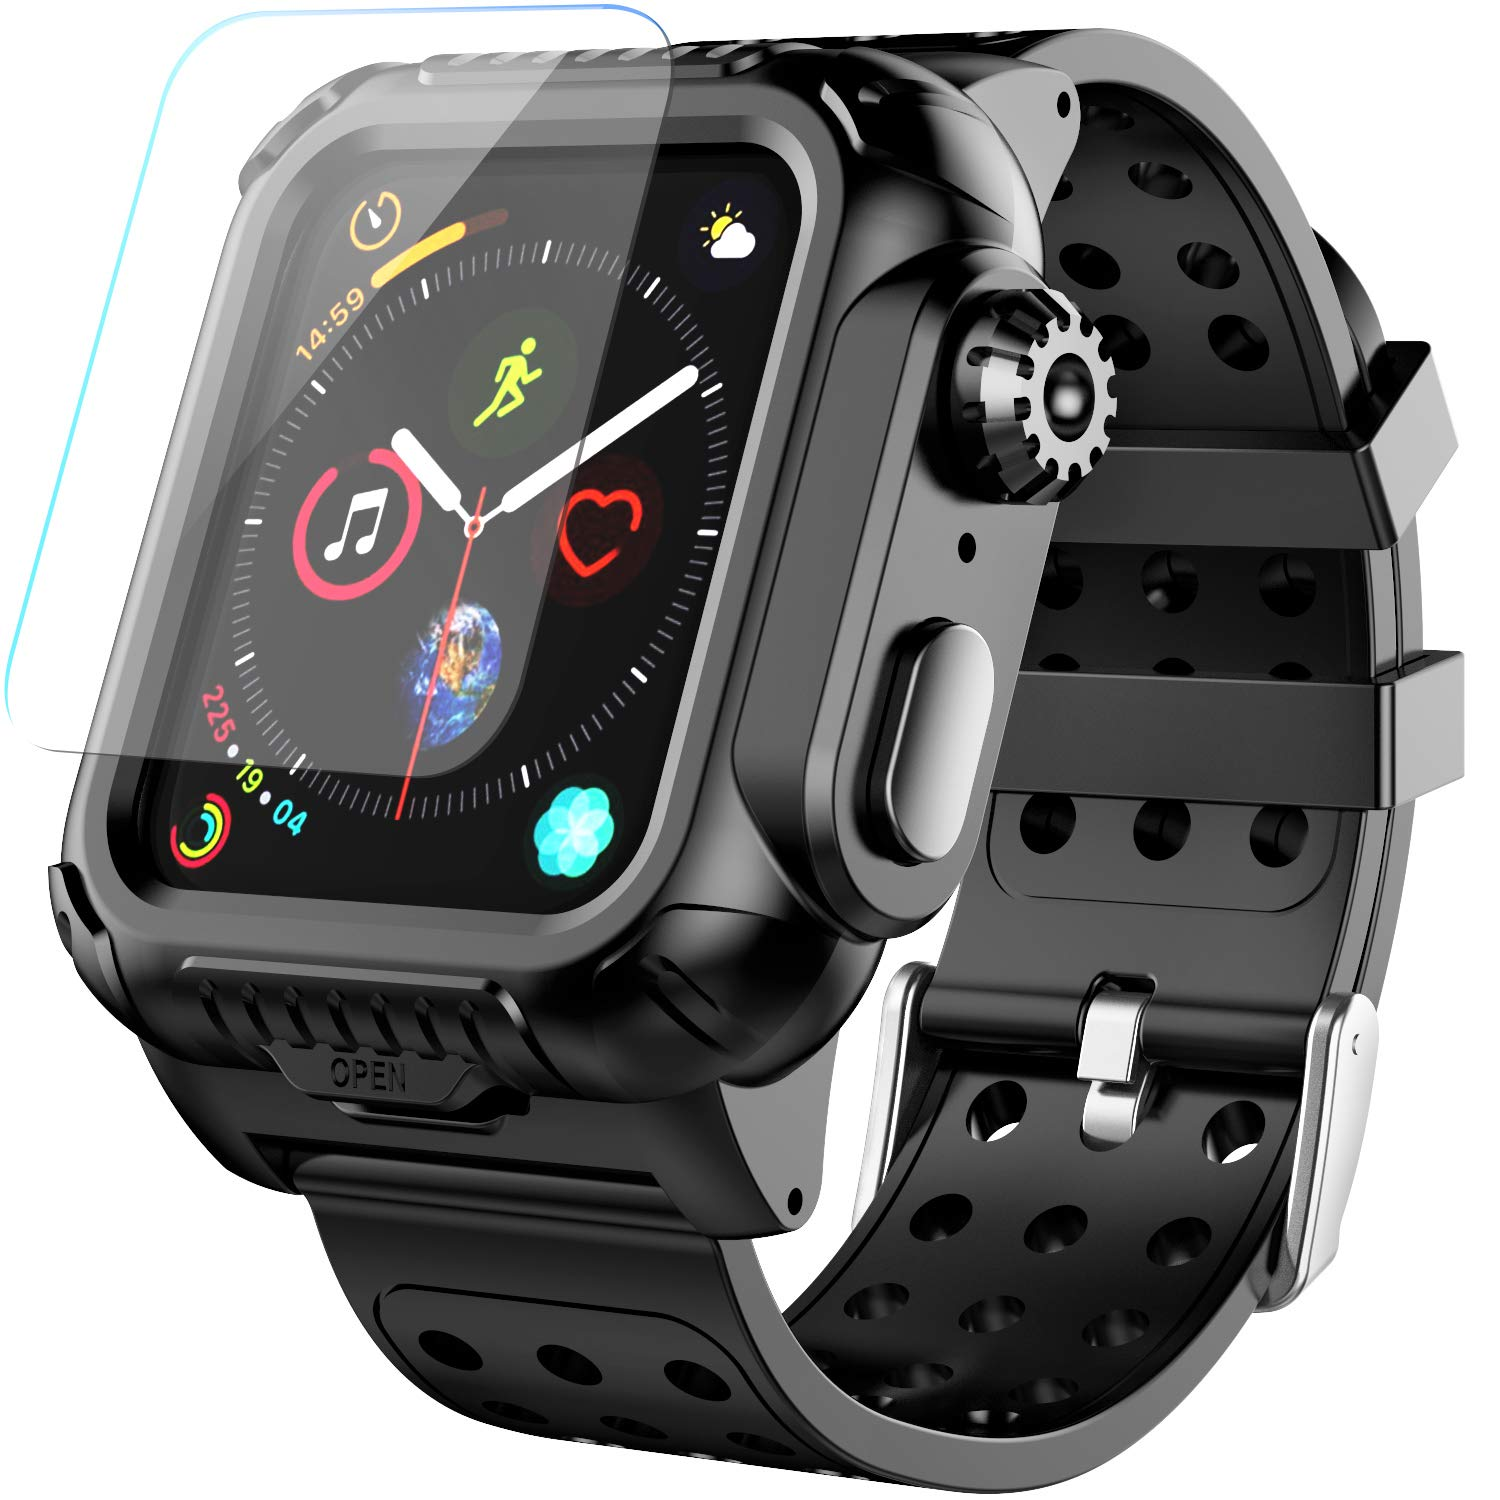 Apple Watch Case Series 4 40mm Band, Temdan Built-in Screen Protector Full-Body Shockproof Rugged Case with Premium Soft Silicone Apple Watch Band for Apple Watch Series 4 40mm 2018 (Black) by Temdan